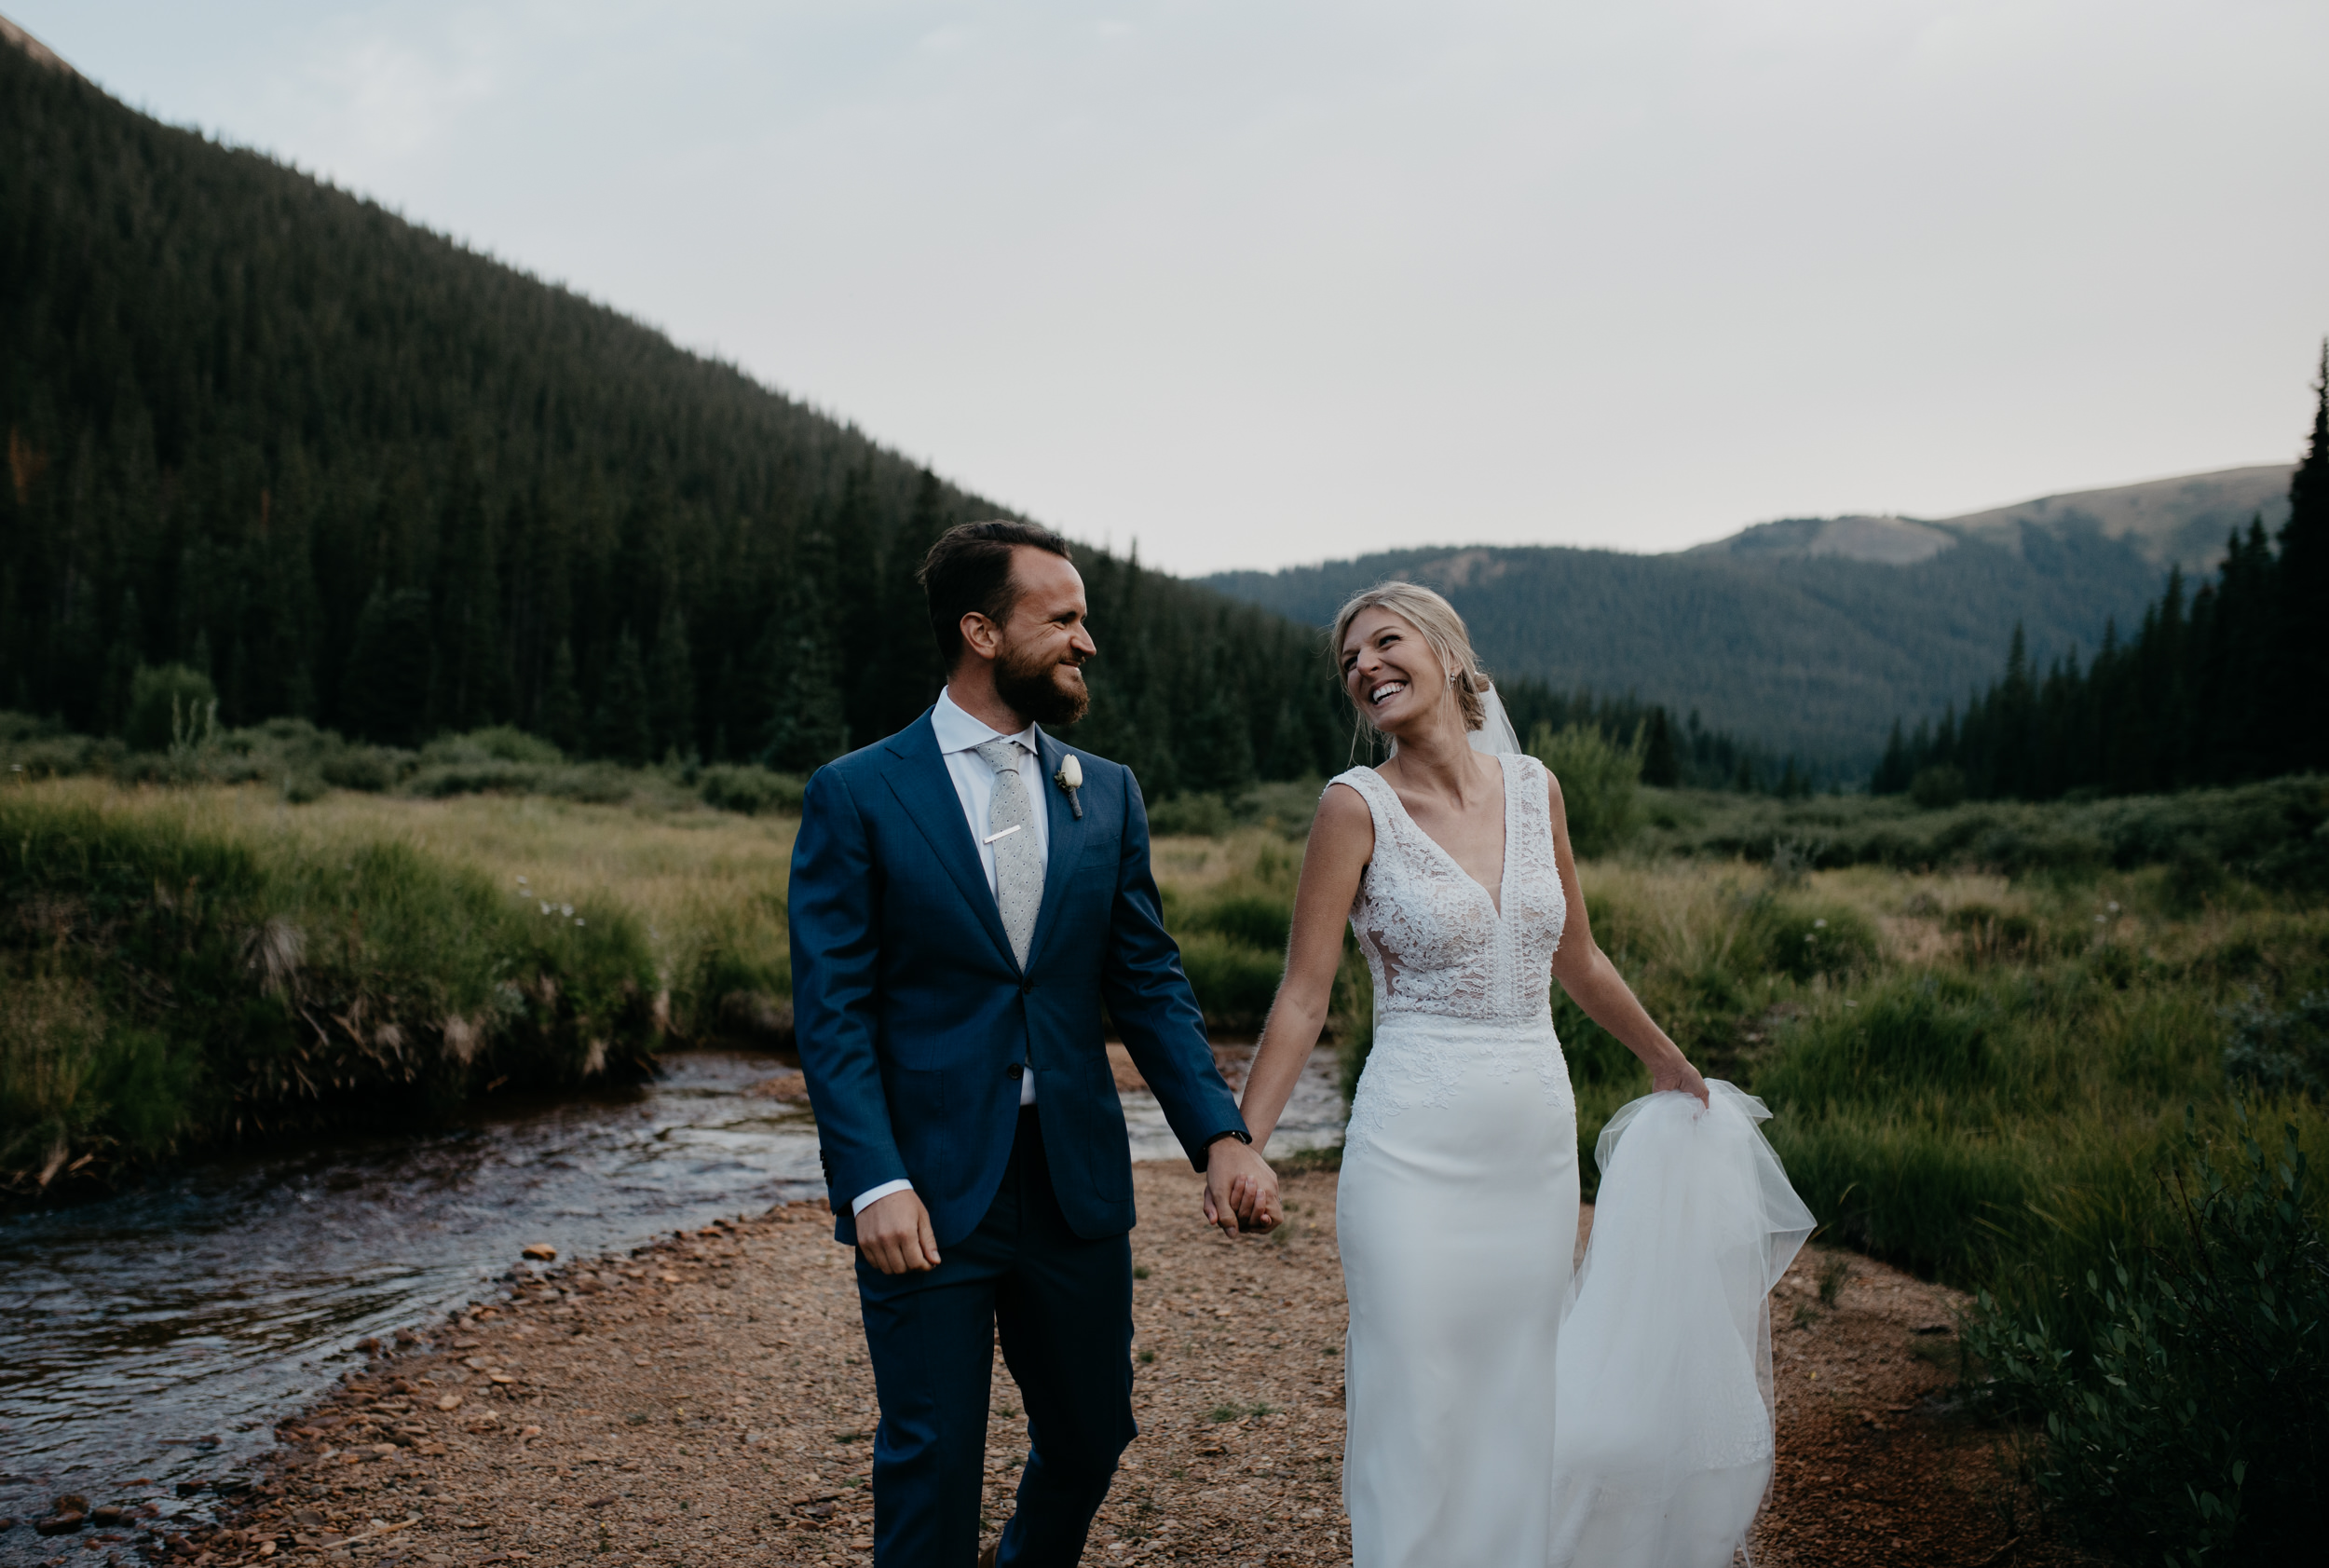 Intimate wedding in Georgetown, Colorado at Guanella Pass.